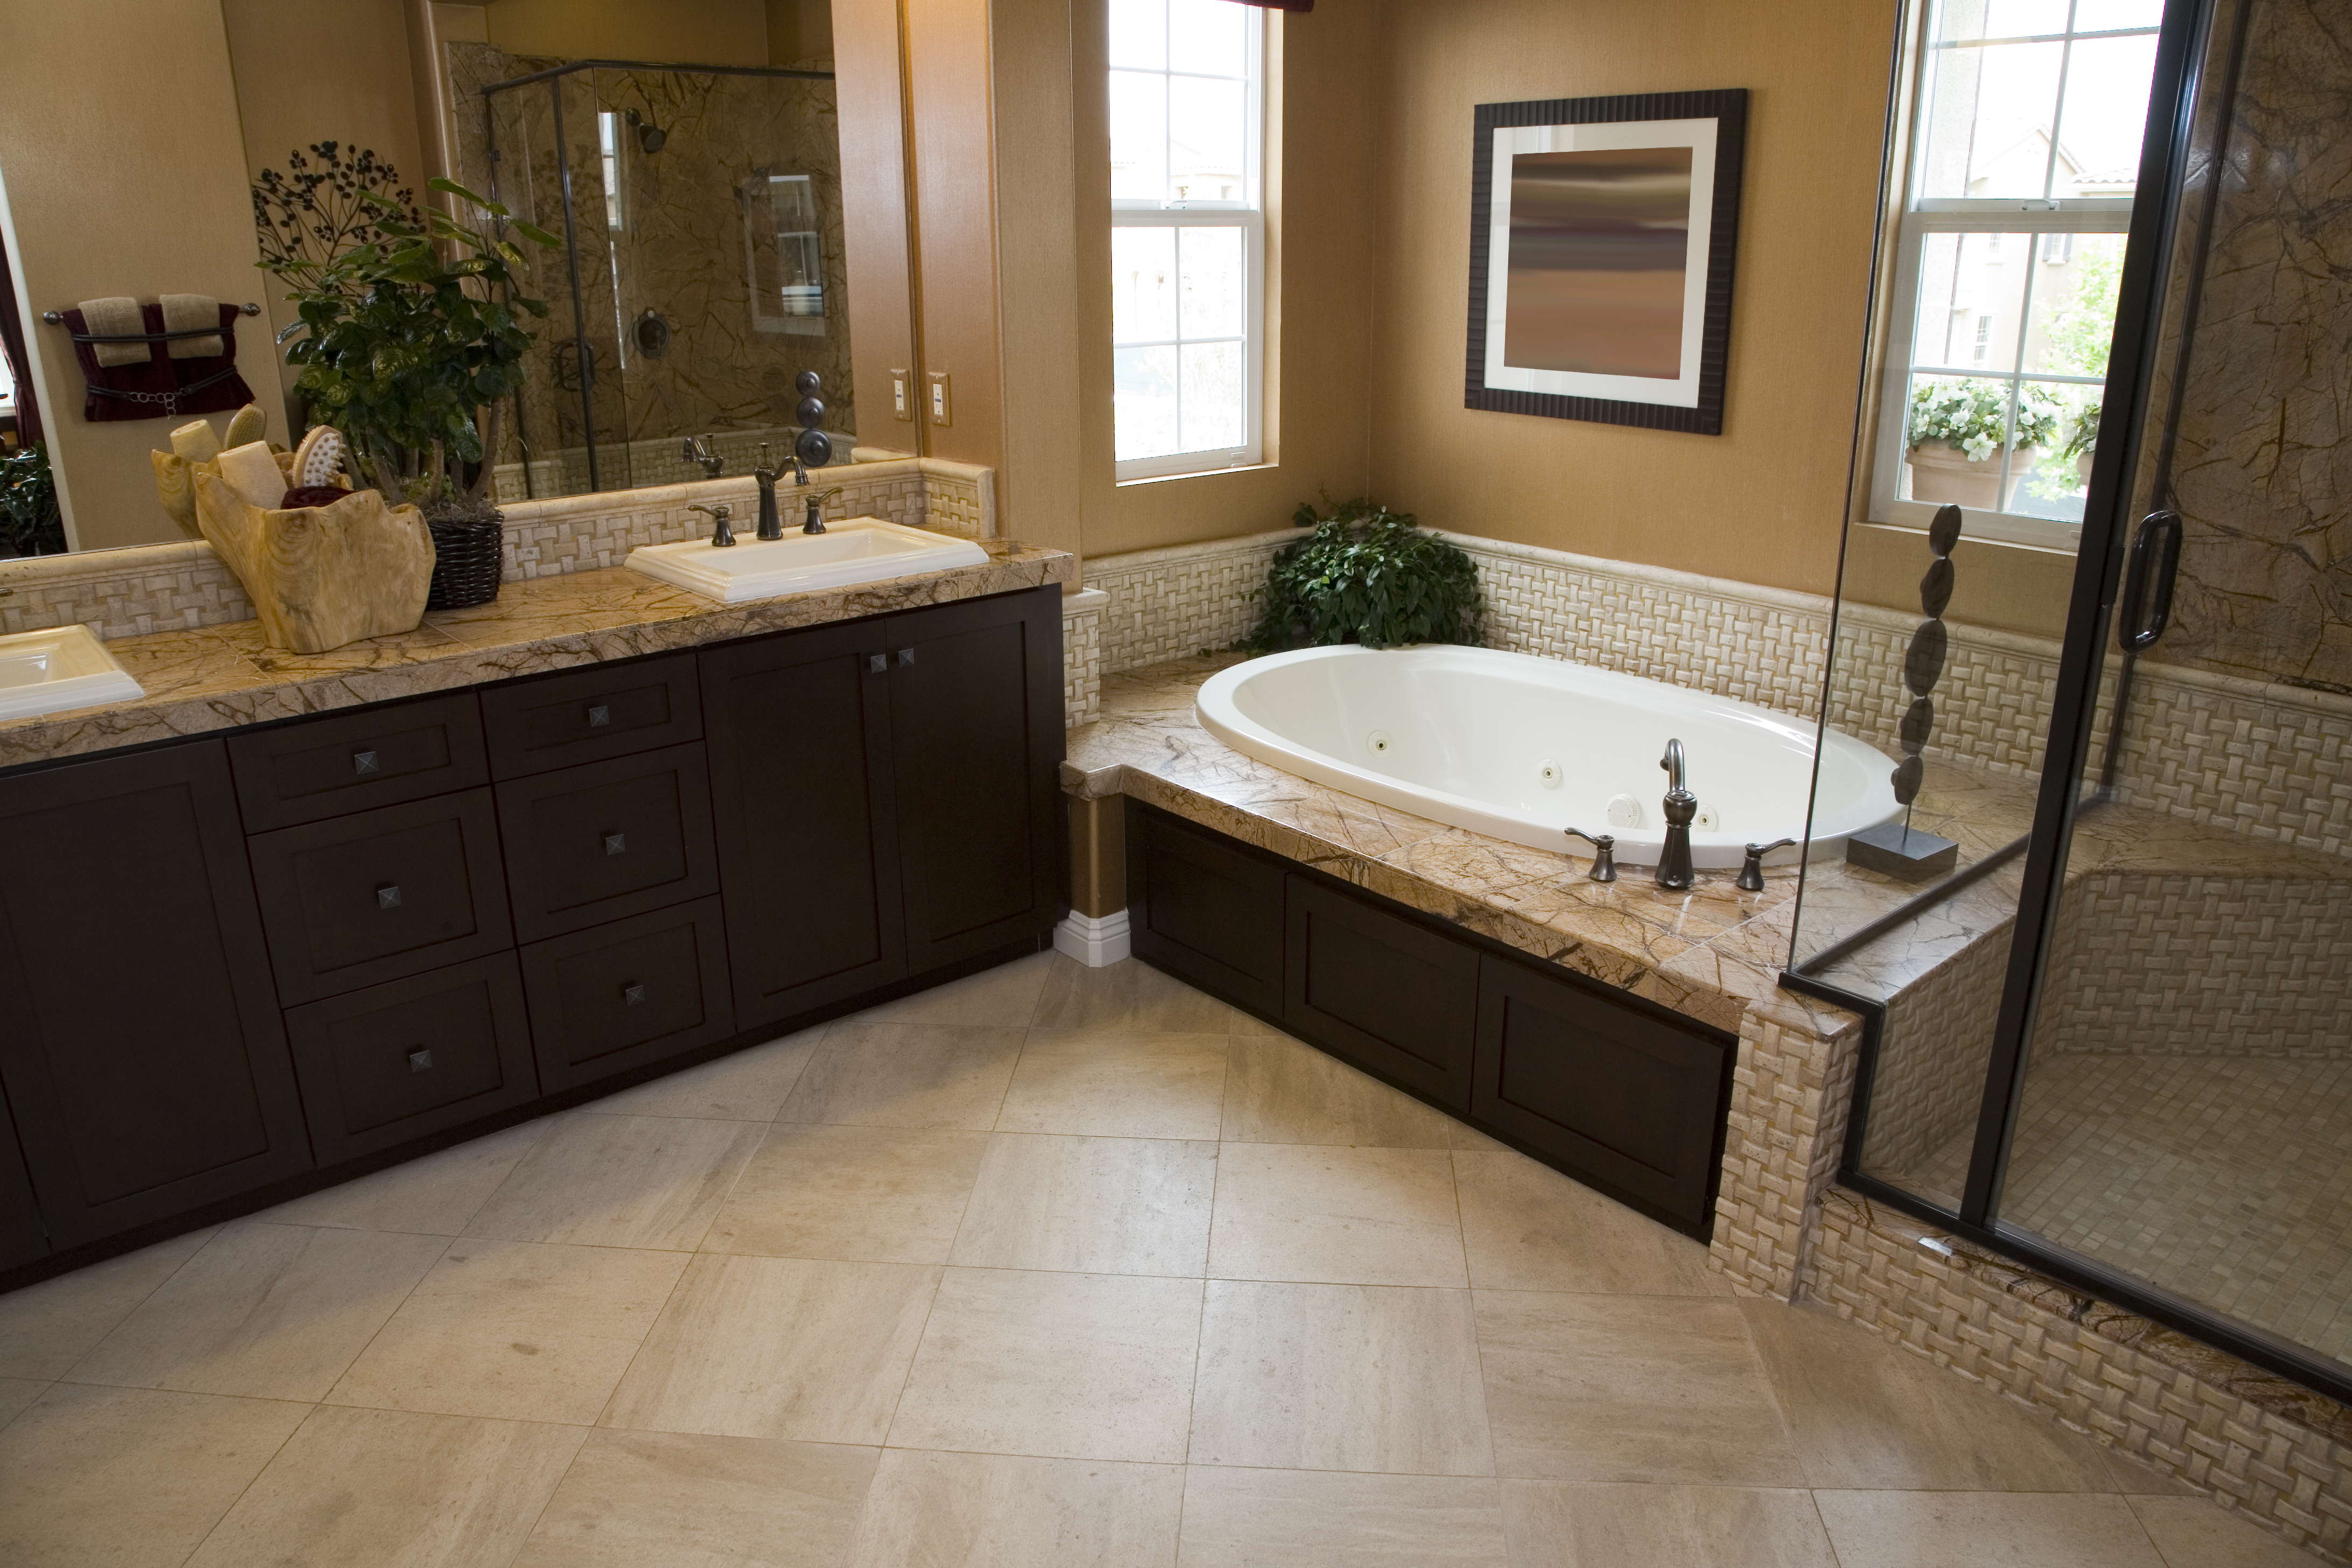 Stone tile flooring holliers flooring america lafayette la stone tile floor offers nearly limitless design potential dailygadgetfo Images